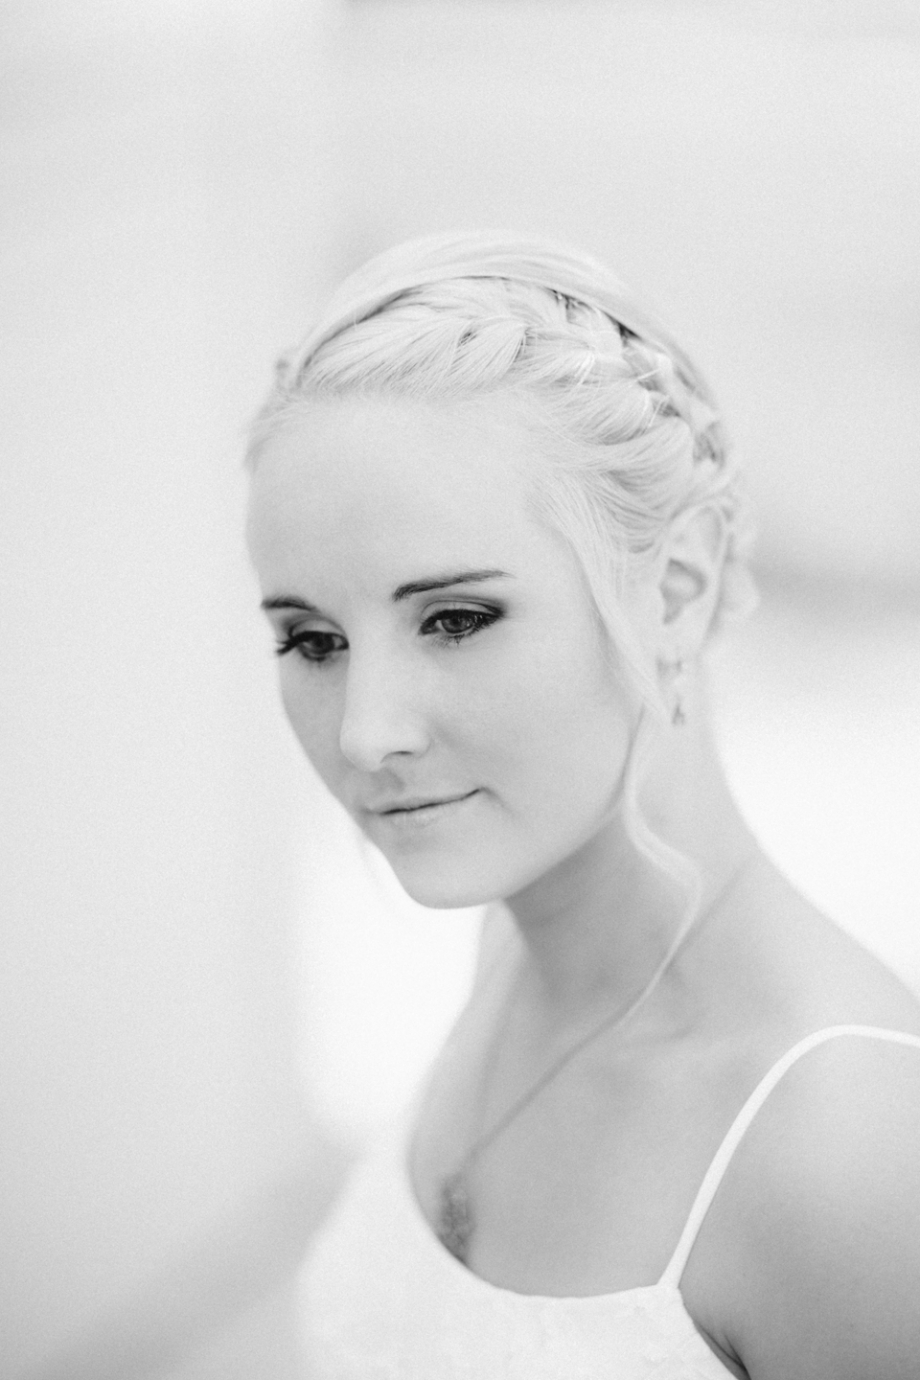 Stunning bride in black and white